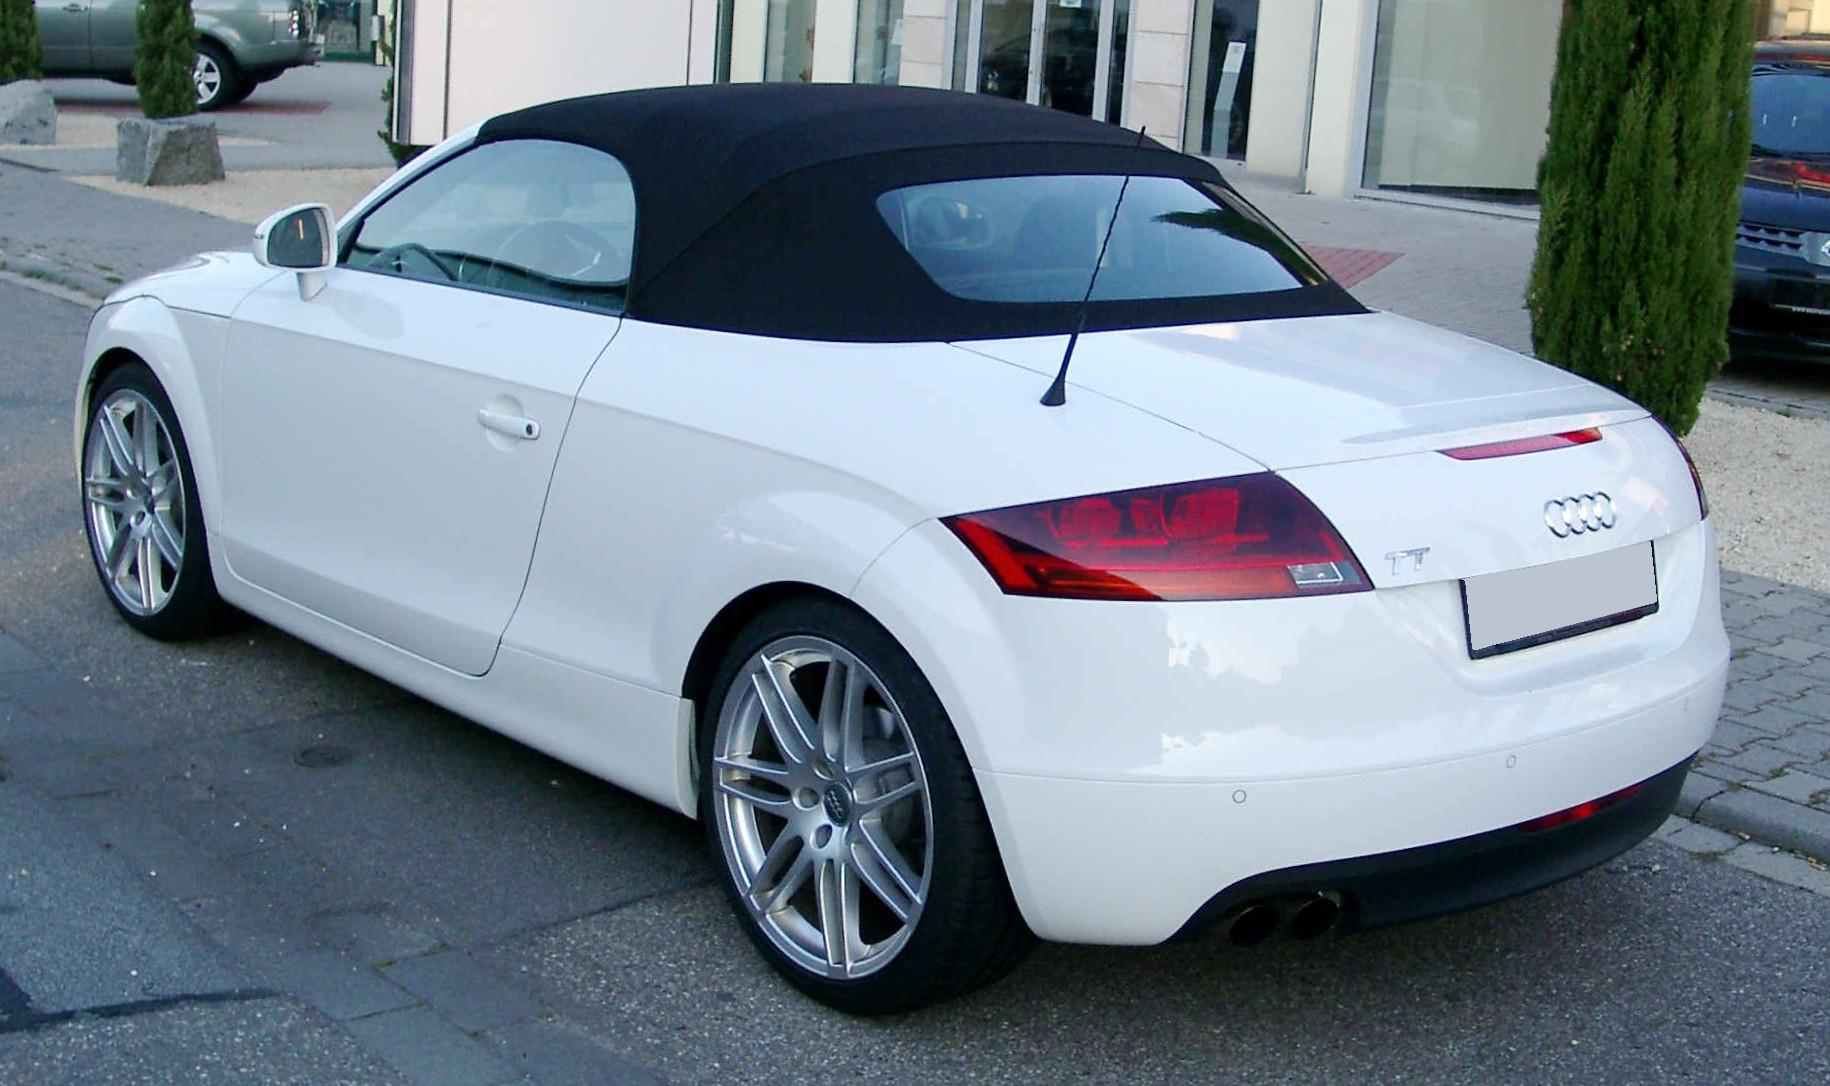 Audi Launches Production Of Next-Generation TT Roadster In Hungary